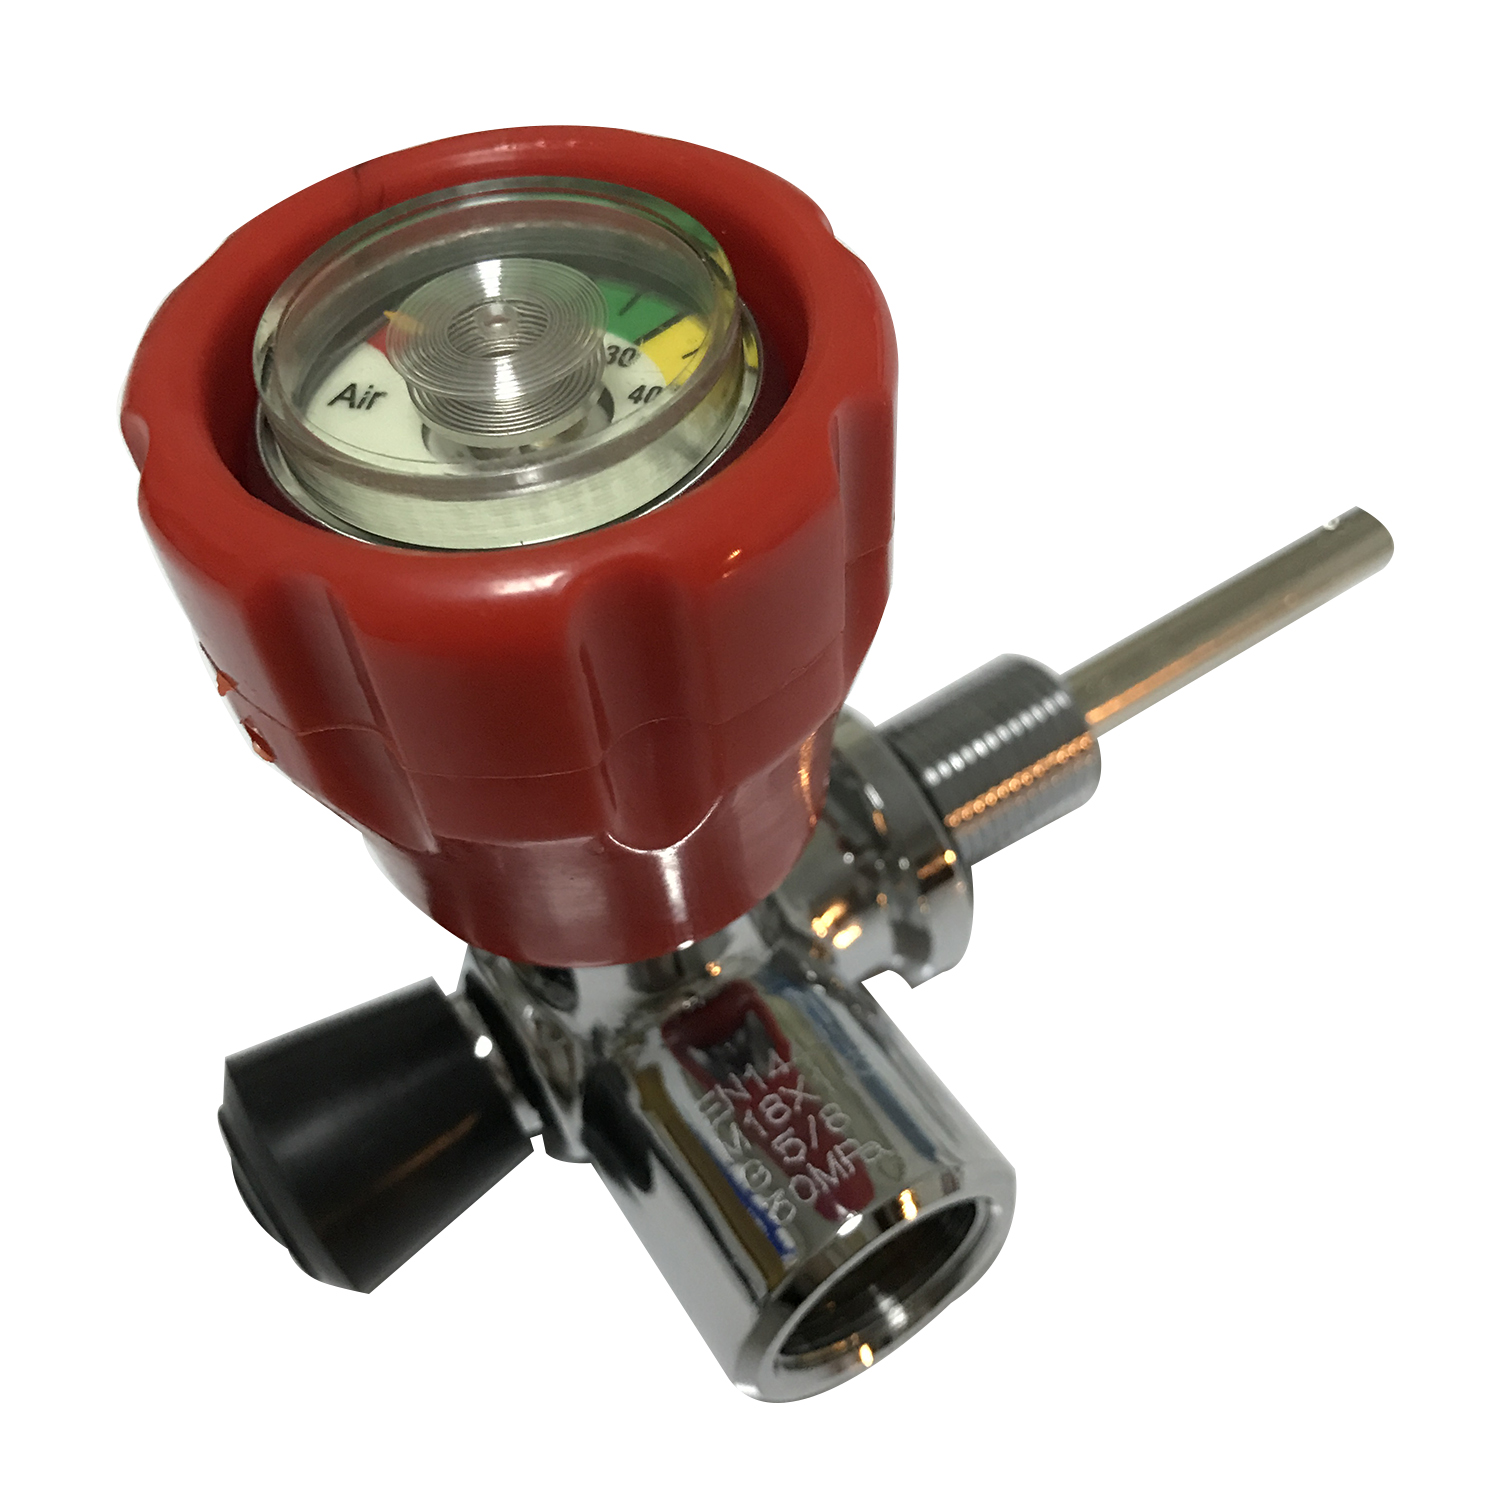 AC931 300Bar Din Gauge  Valve PCP High Pressure Cylinder Valve Paintball Tank Red Safety Valve For PCP Air Gun Pistol